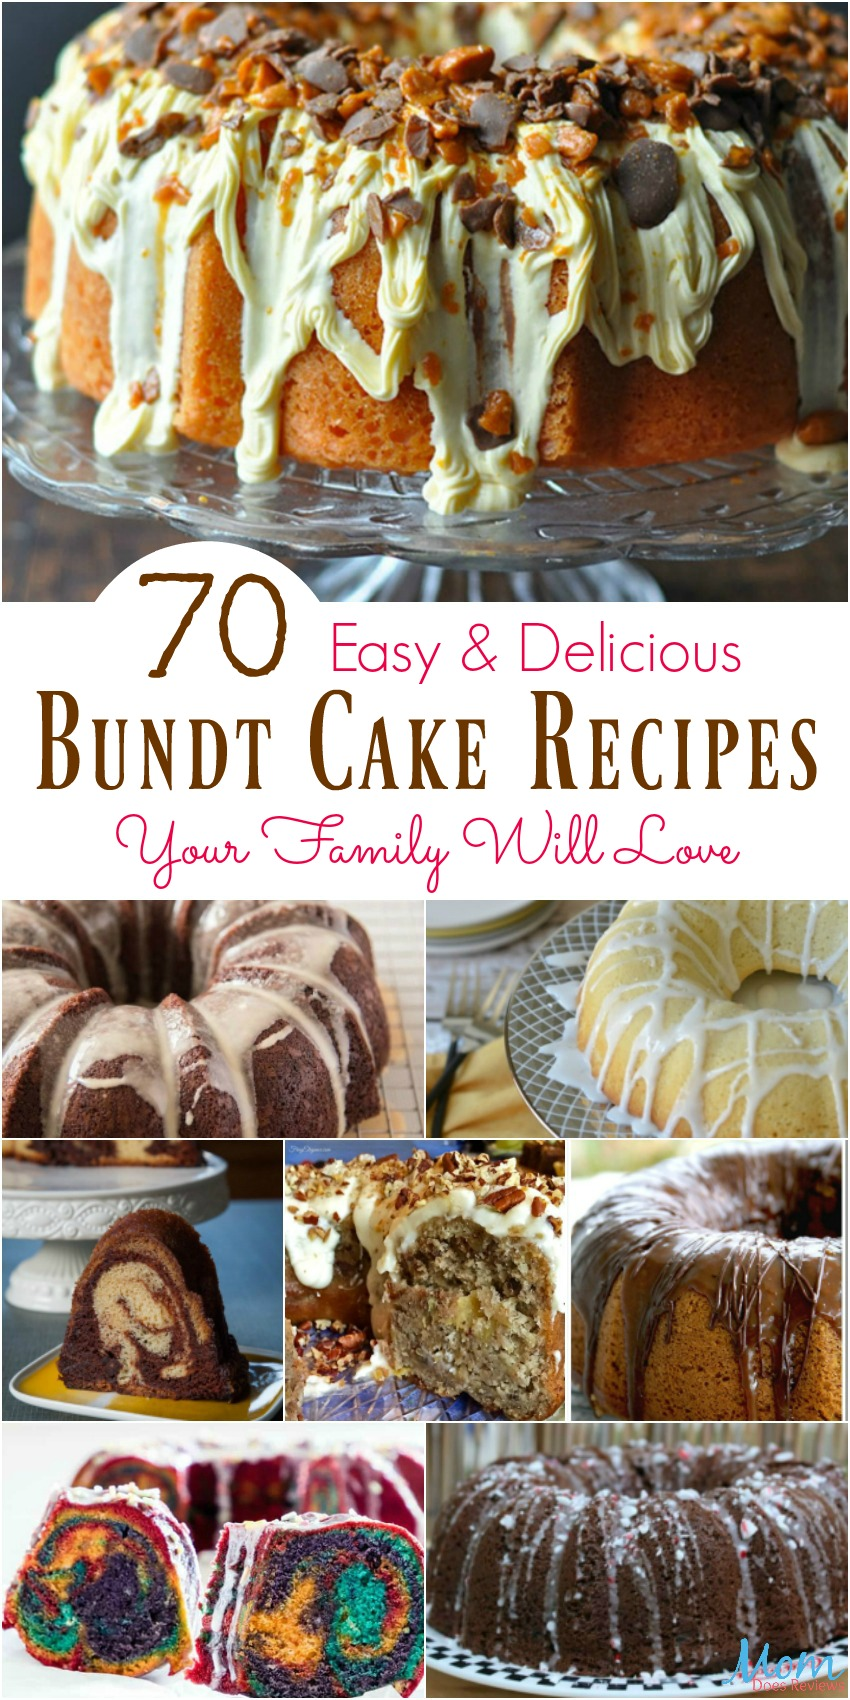 70 Easy & Delicious Bundt Cake Recipes Your Family Will Love #cakes #recipes #desserts #sweets #yummy